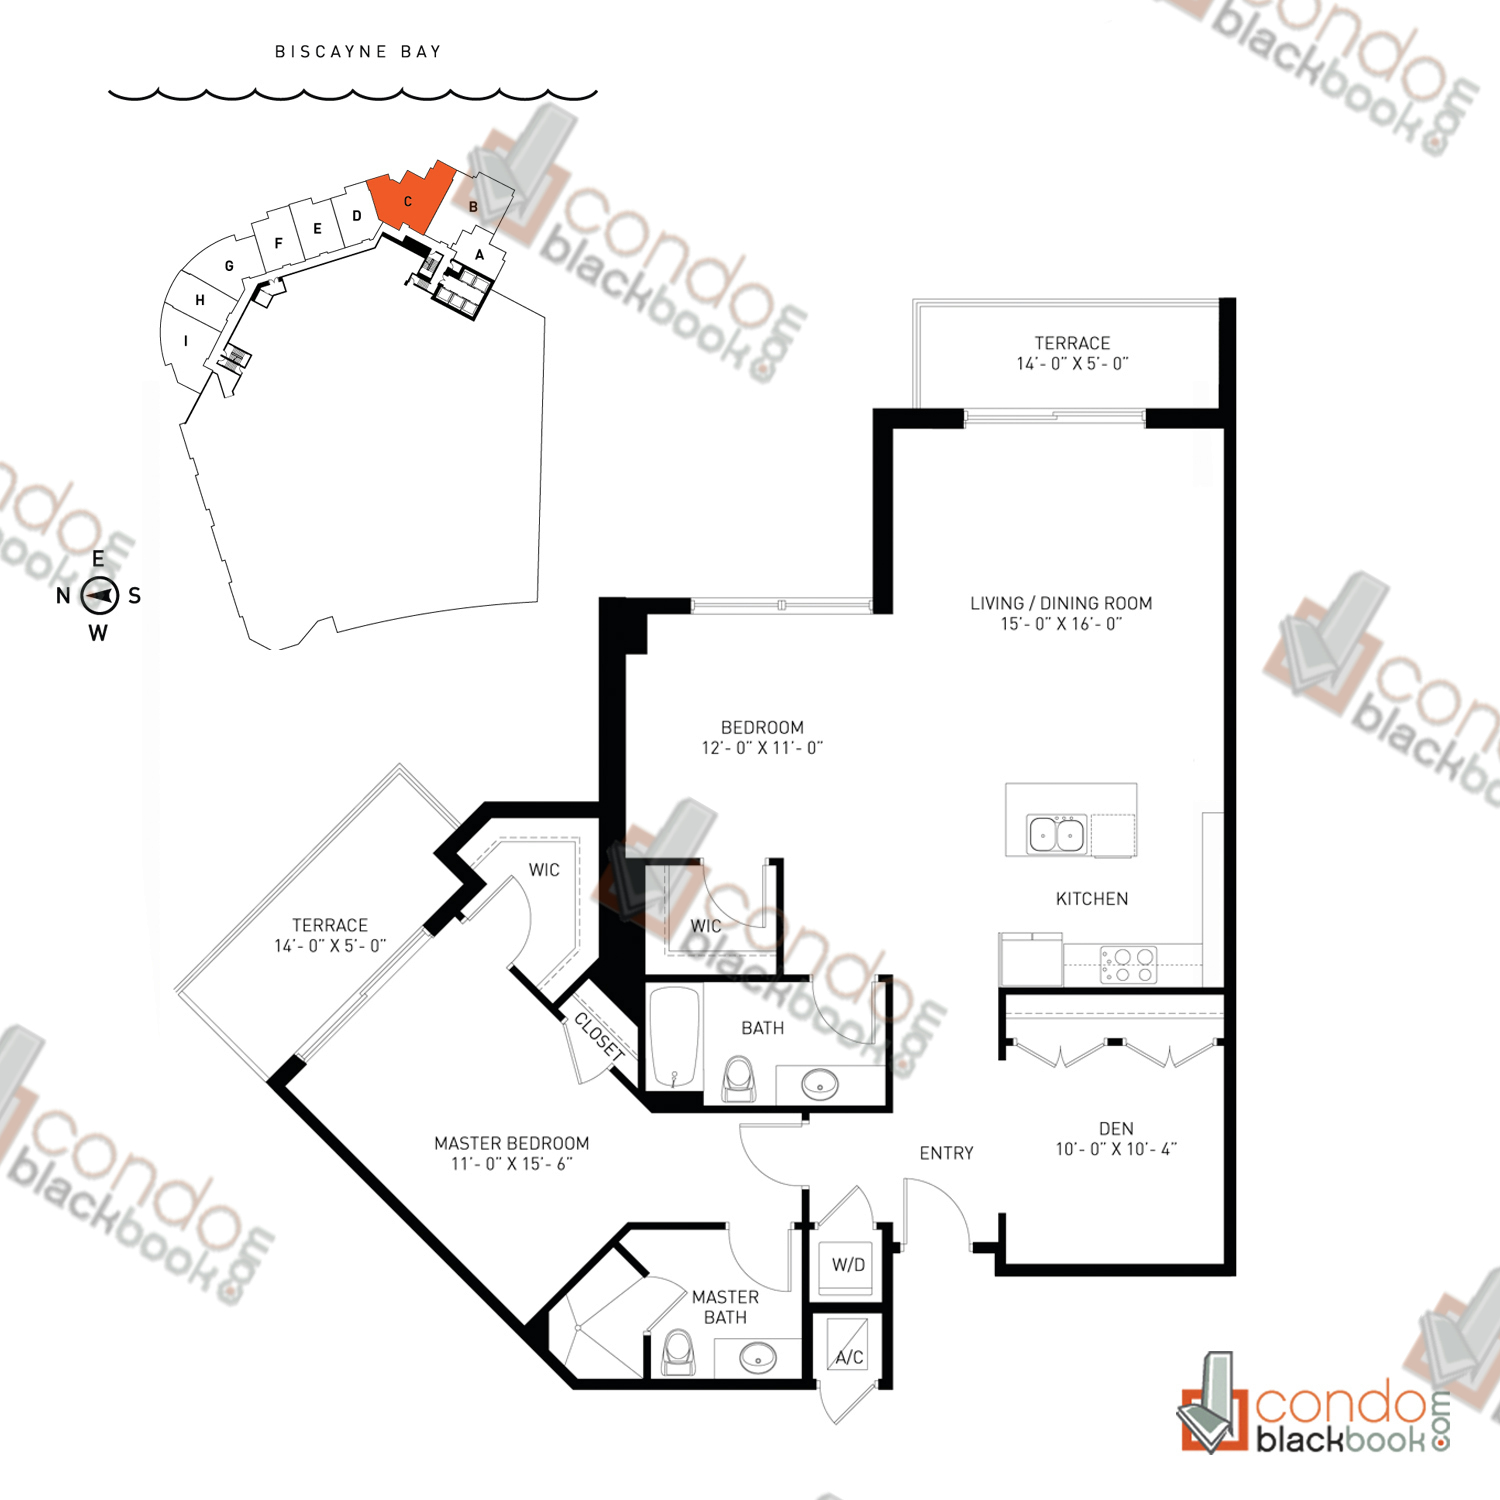 Floor plan for Quantum on the Bay Edgewater Miami, model Loft_C, line South Tower - 03, 2/2.5+Den bedrooms, 1,332 sq ft